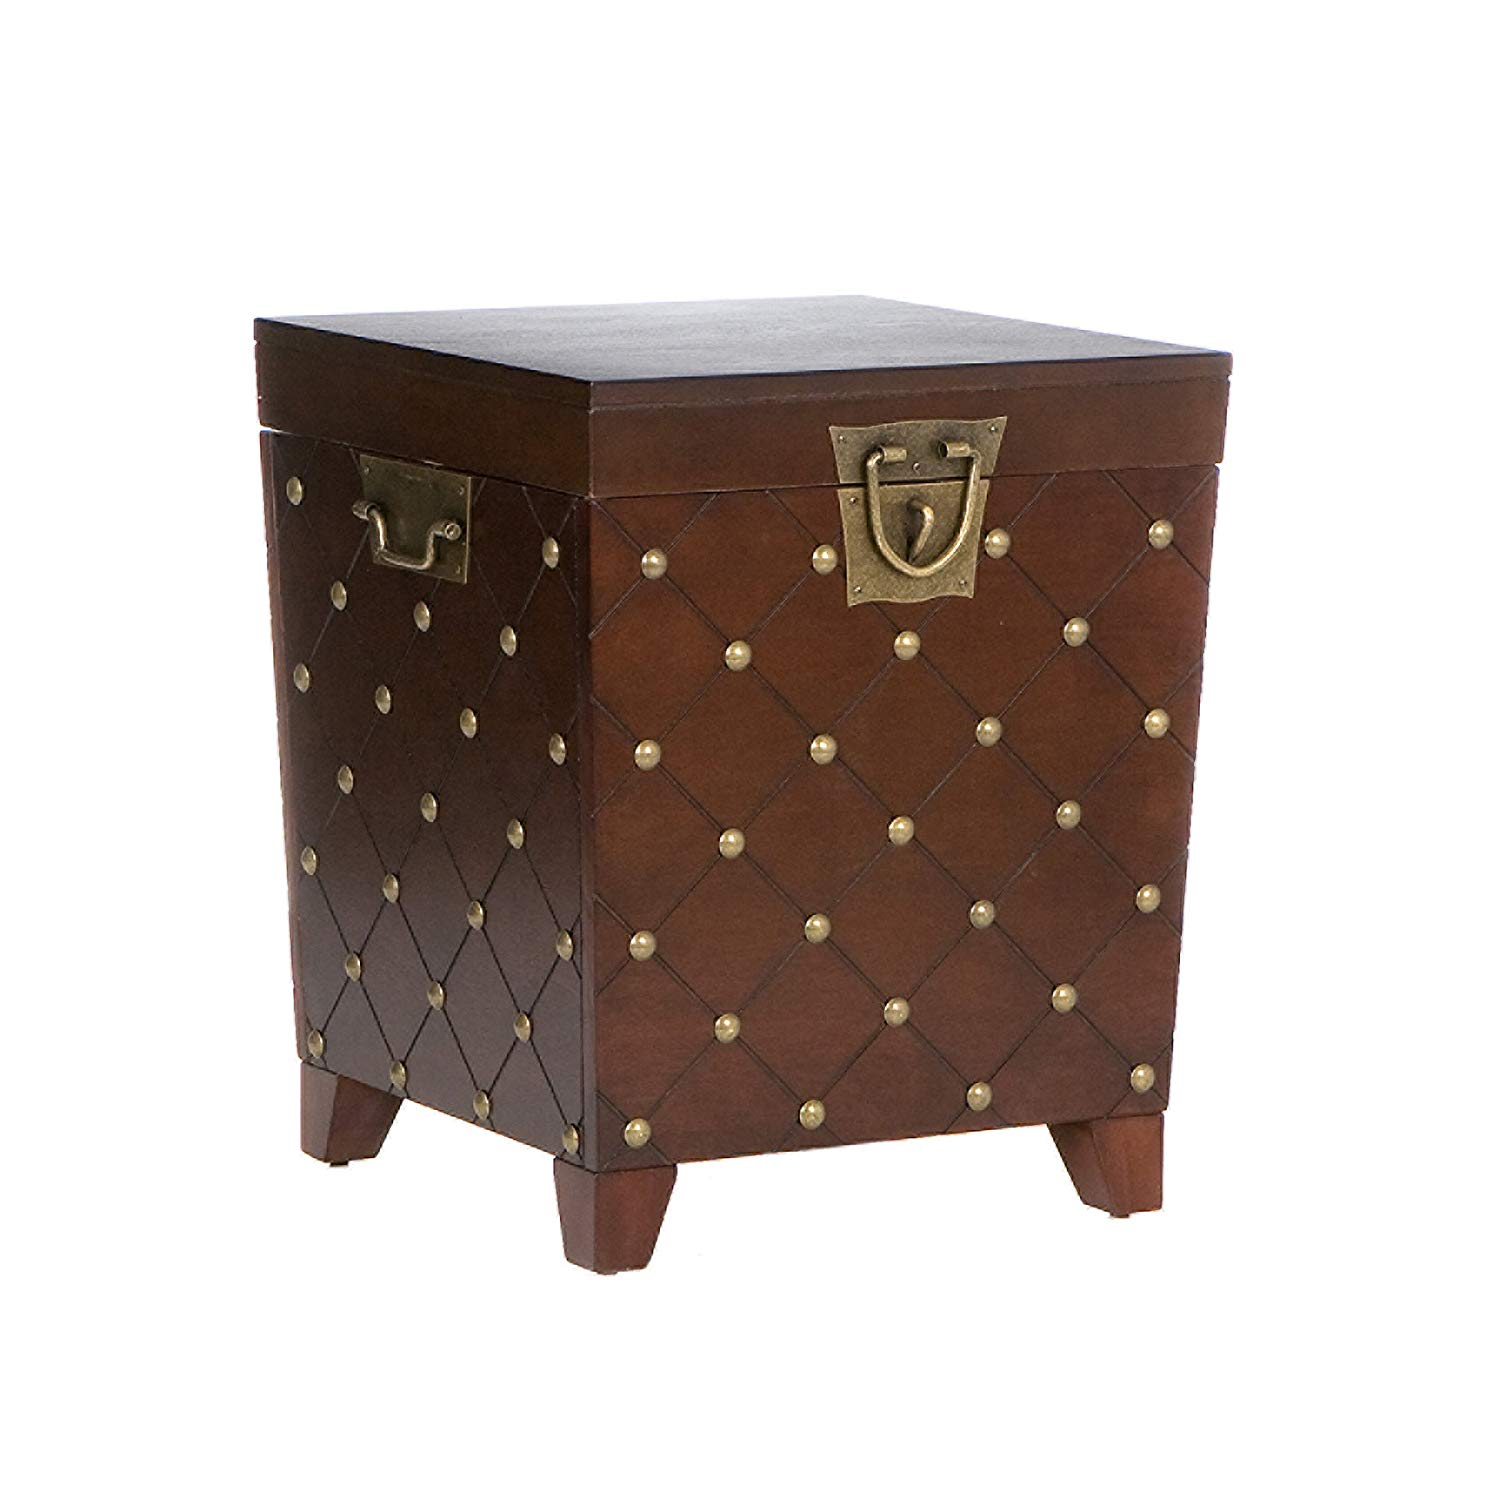 bowery hill nailhead trunk end table espresso accent kitchen dining glass desk sauder storage cabinet cream metal side yellow retro sofa west elm tripod lamp big umbrella ikea